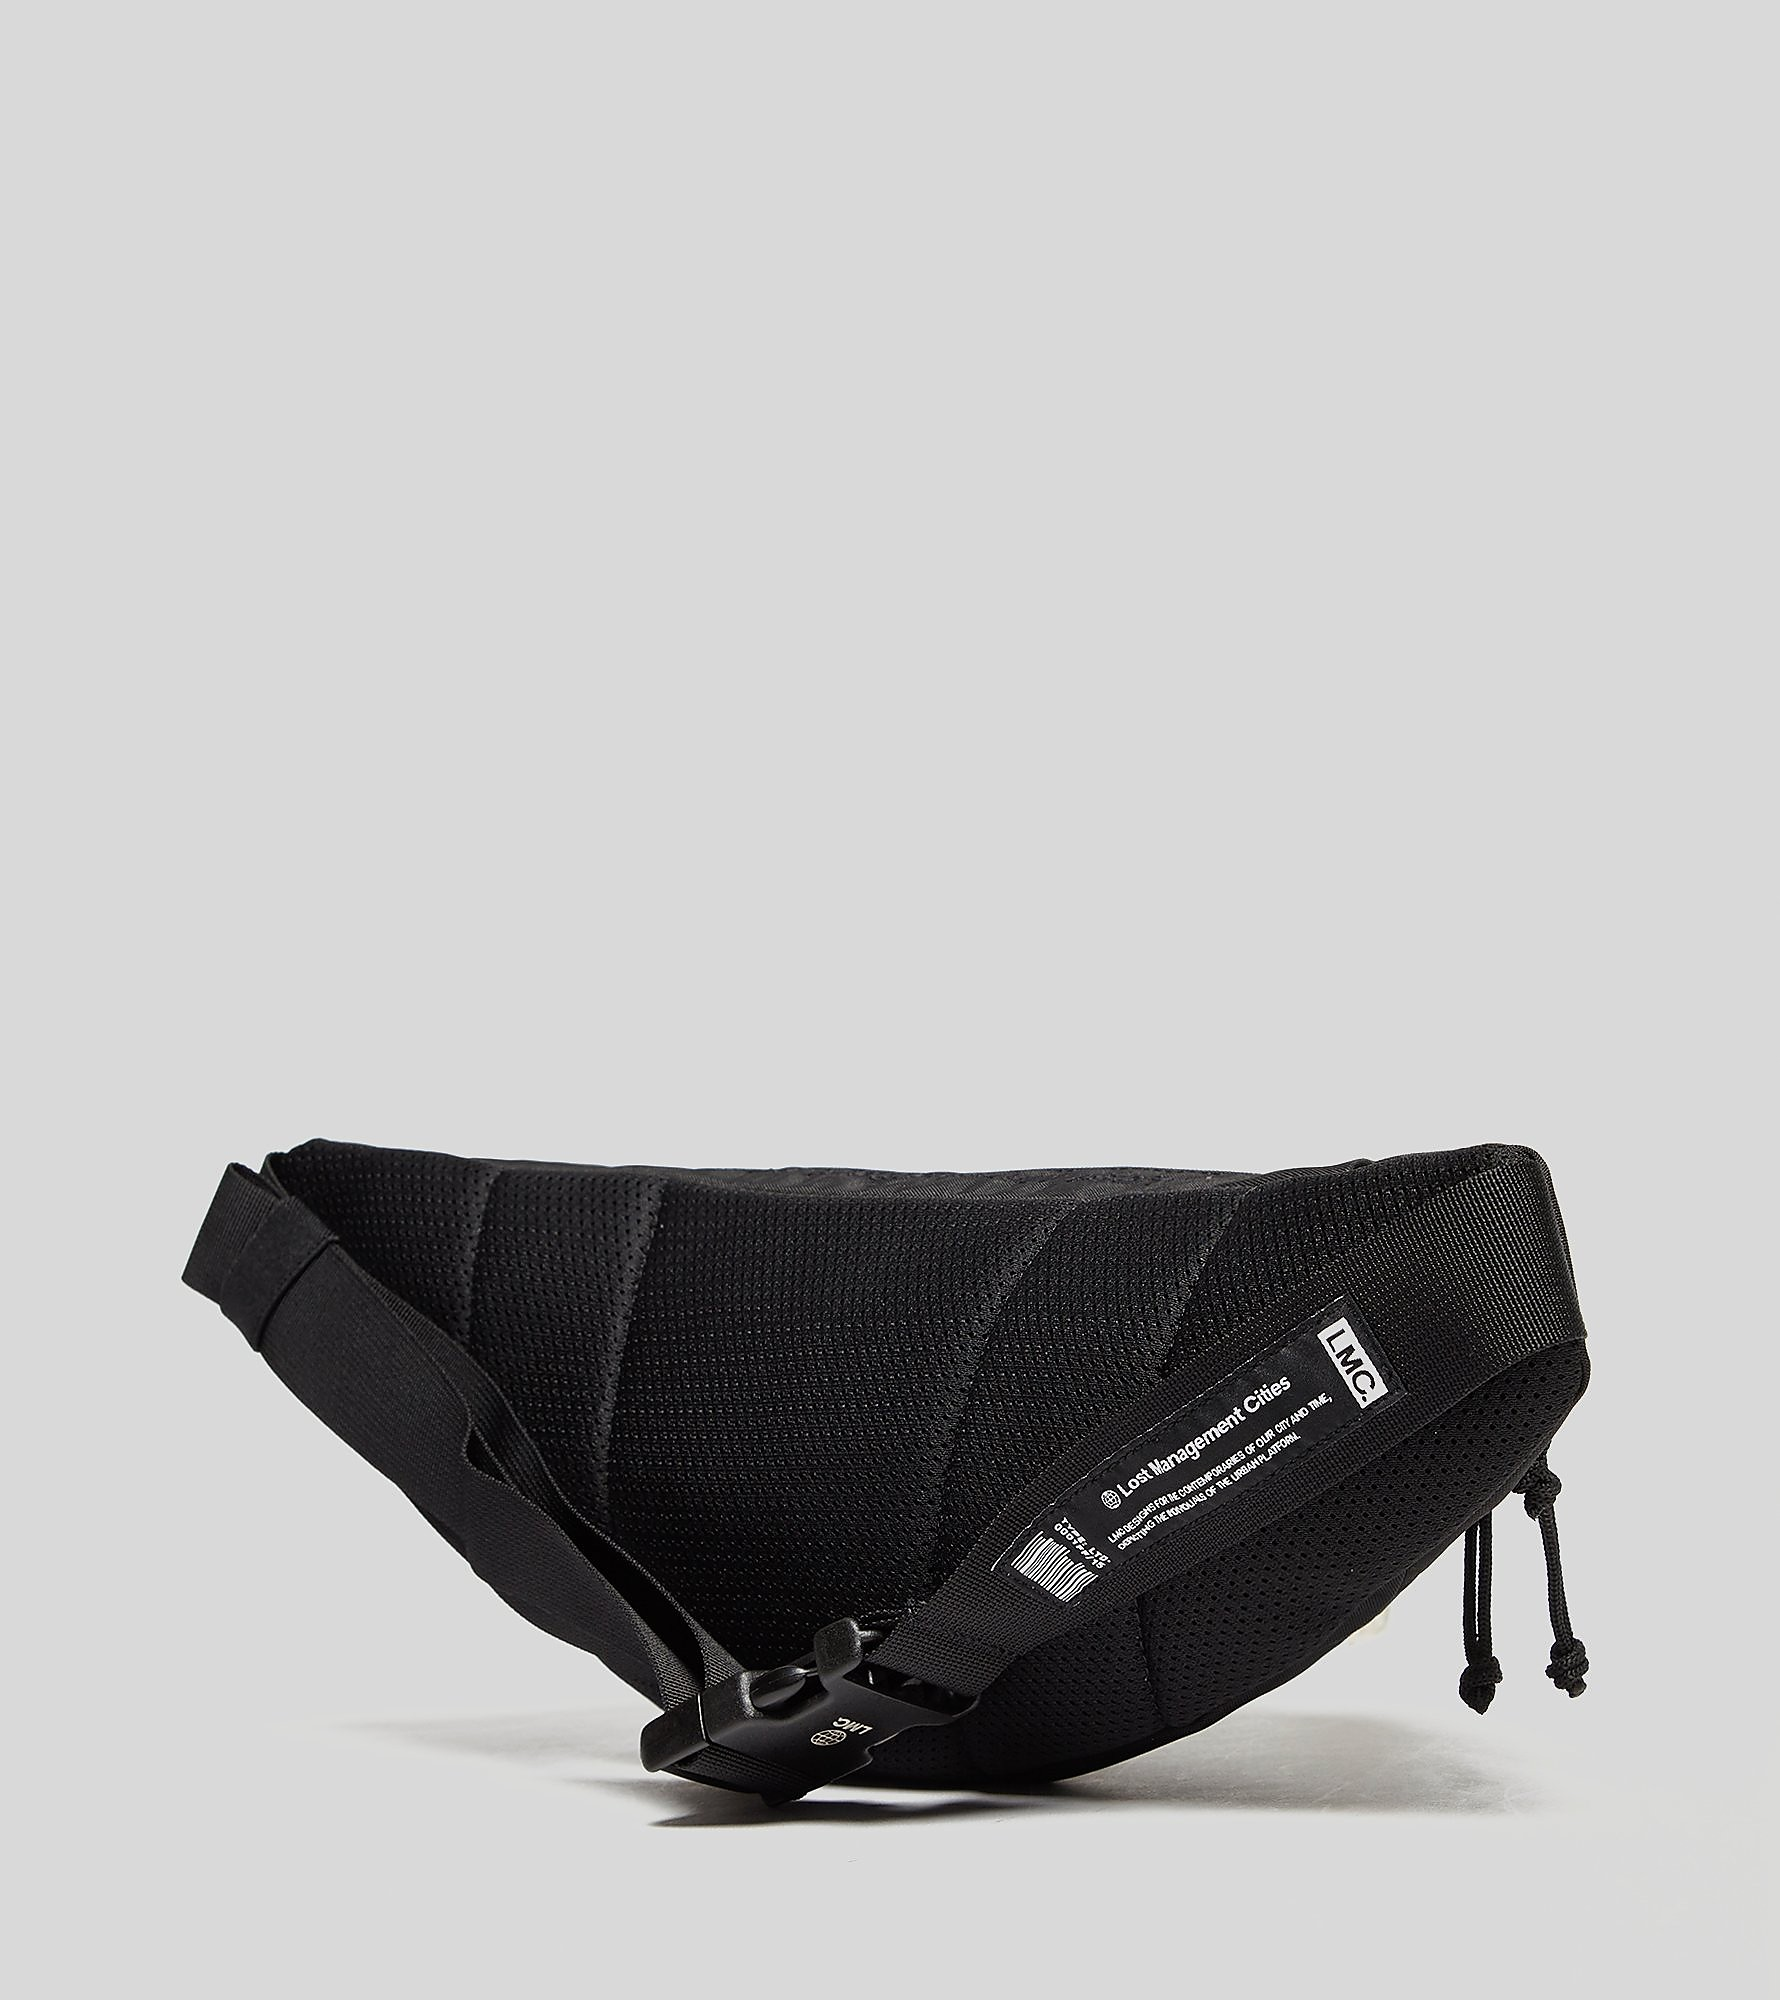 Lost Management Cities PVC RL Waist Bag